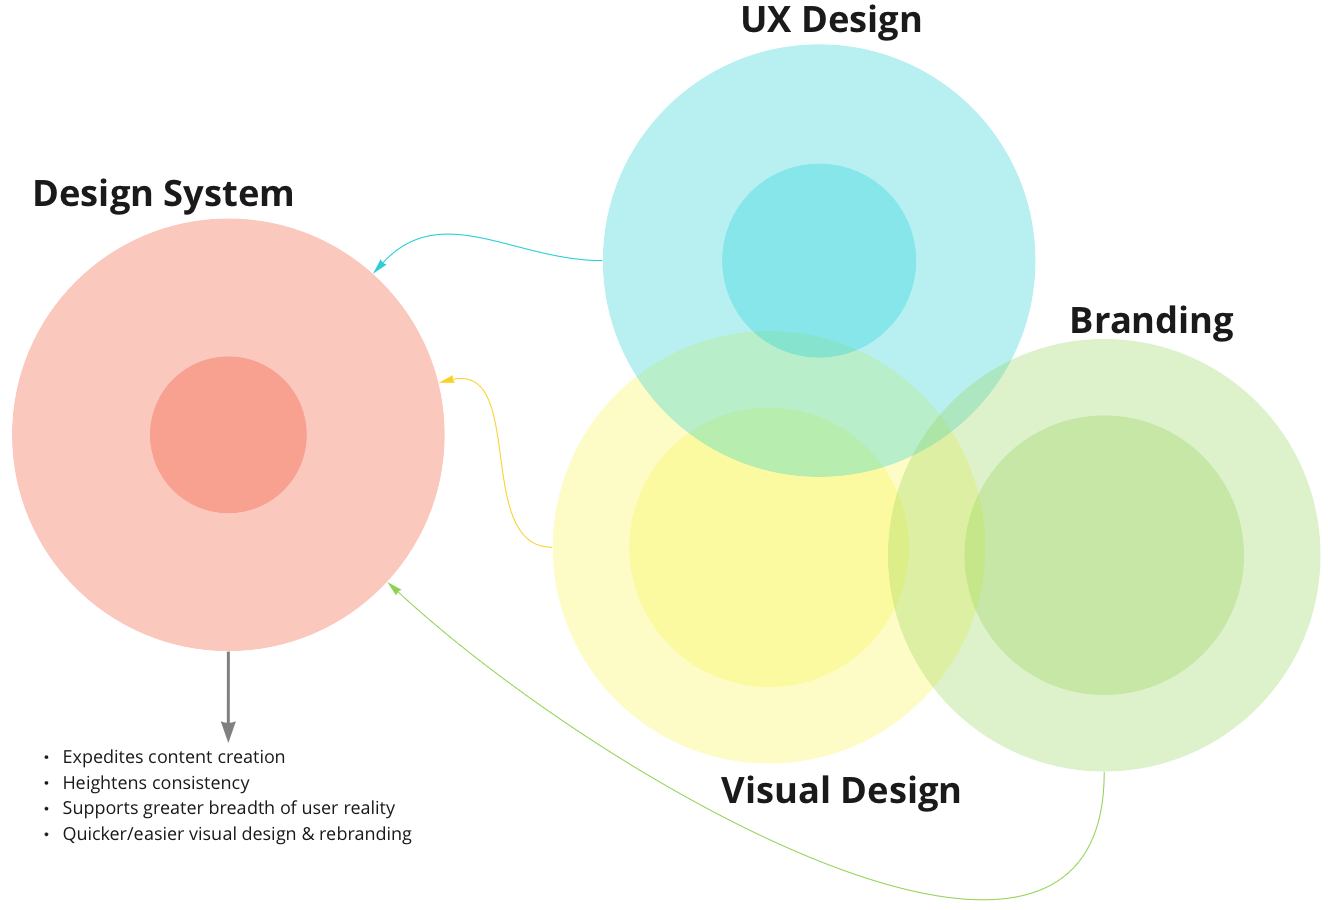 Diagram of circles implying overlap of UX Design, Branding, and Visual Design and that they feed into a Design System.